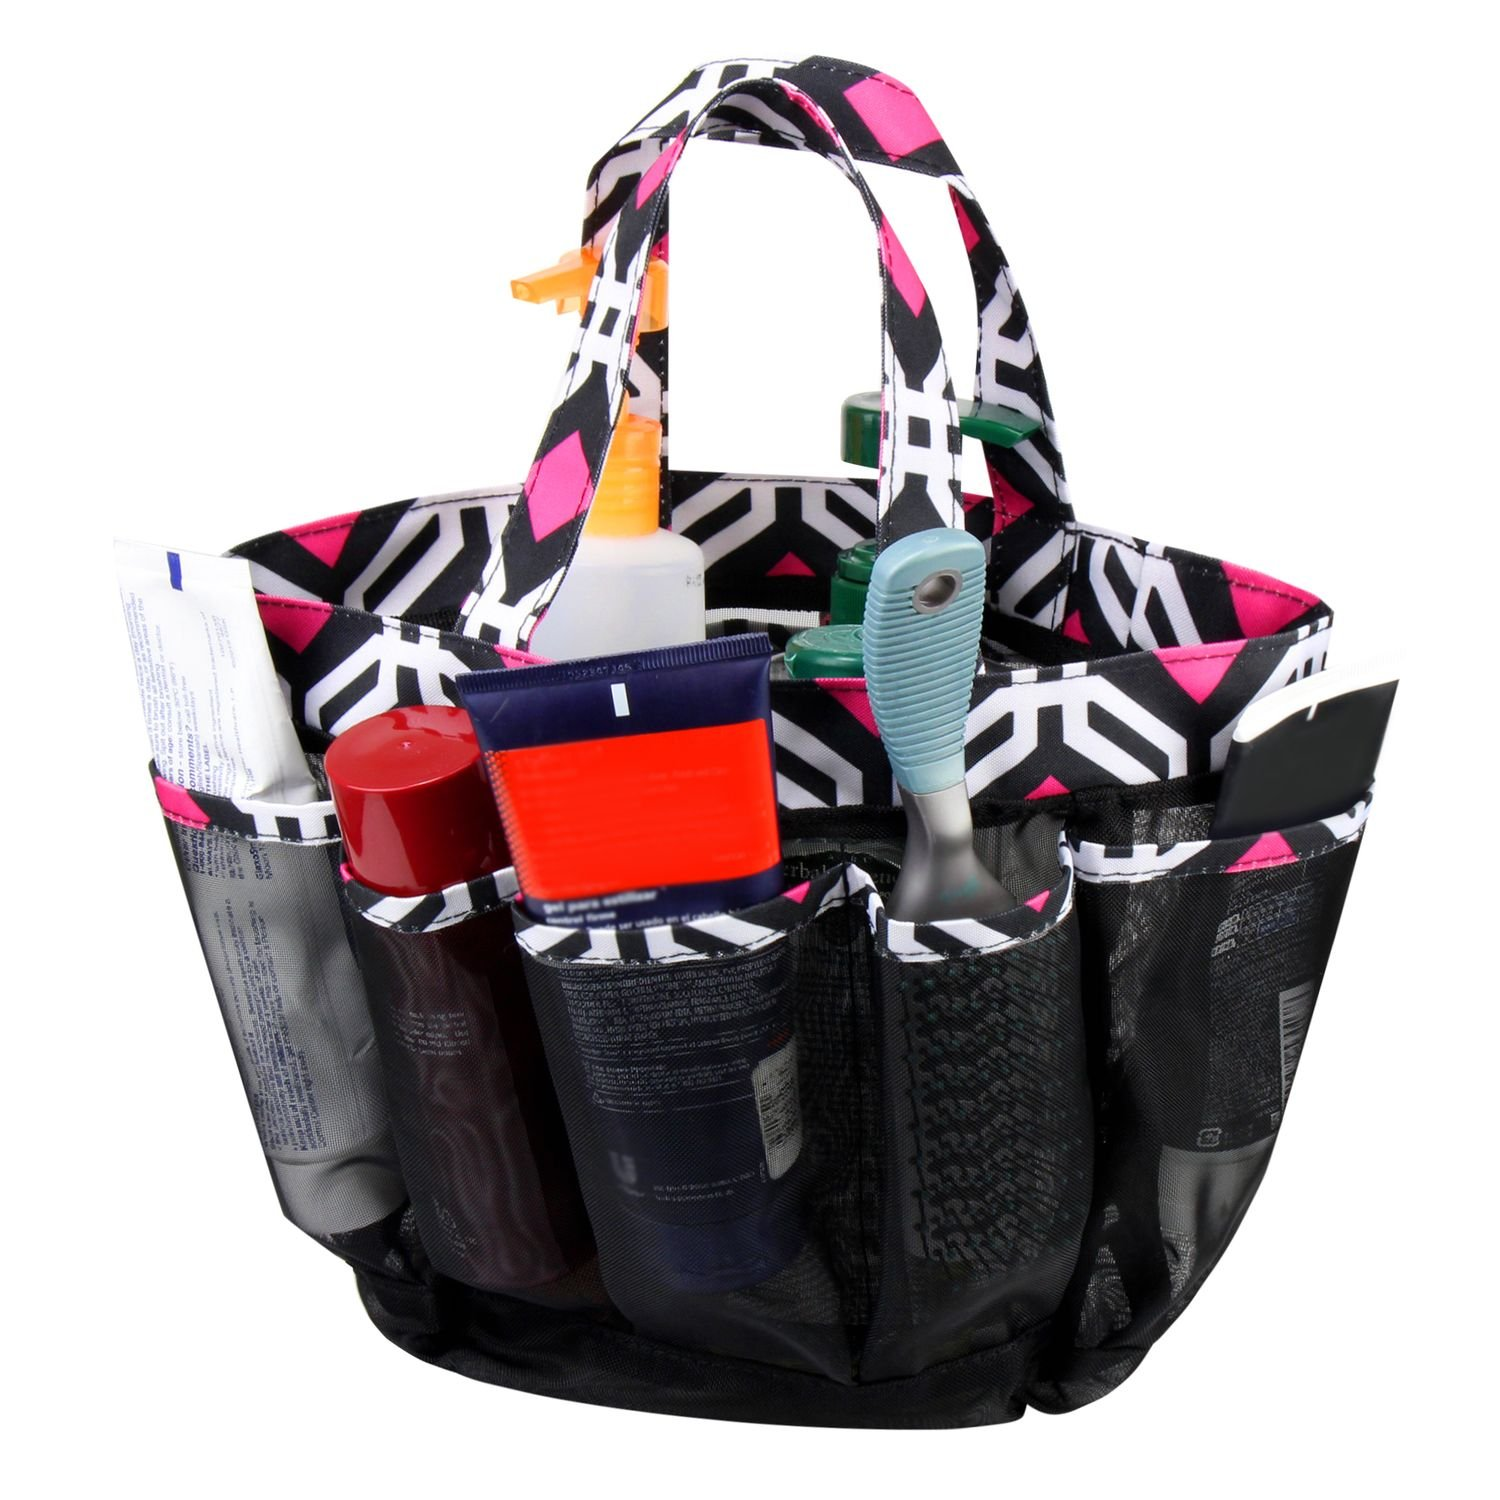 Zodaca Mesh Shower Caddie Tote Bag, Black Graphic by Zodaca (Image #2)